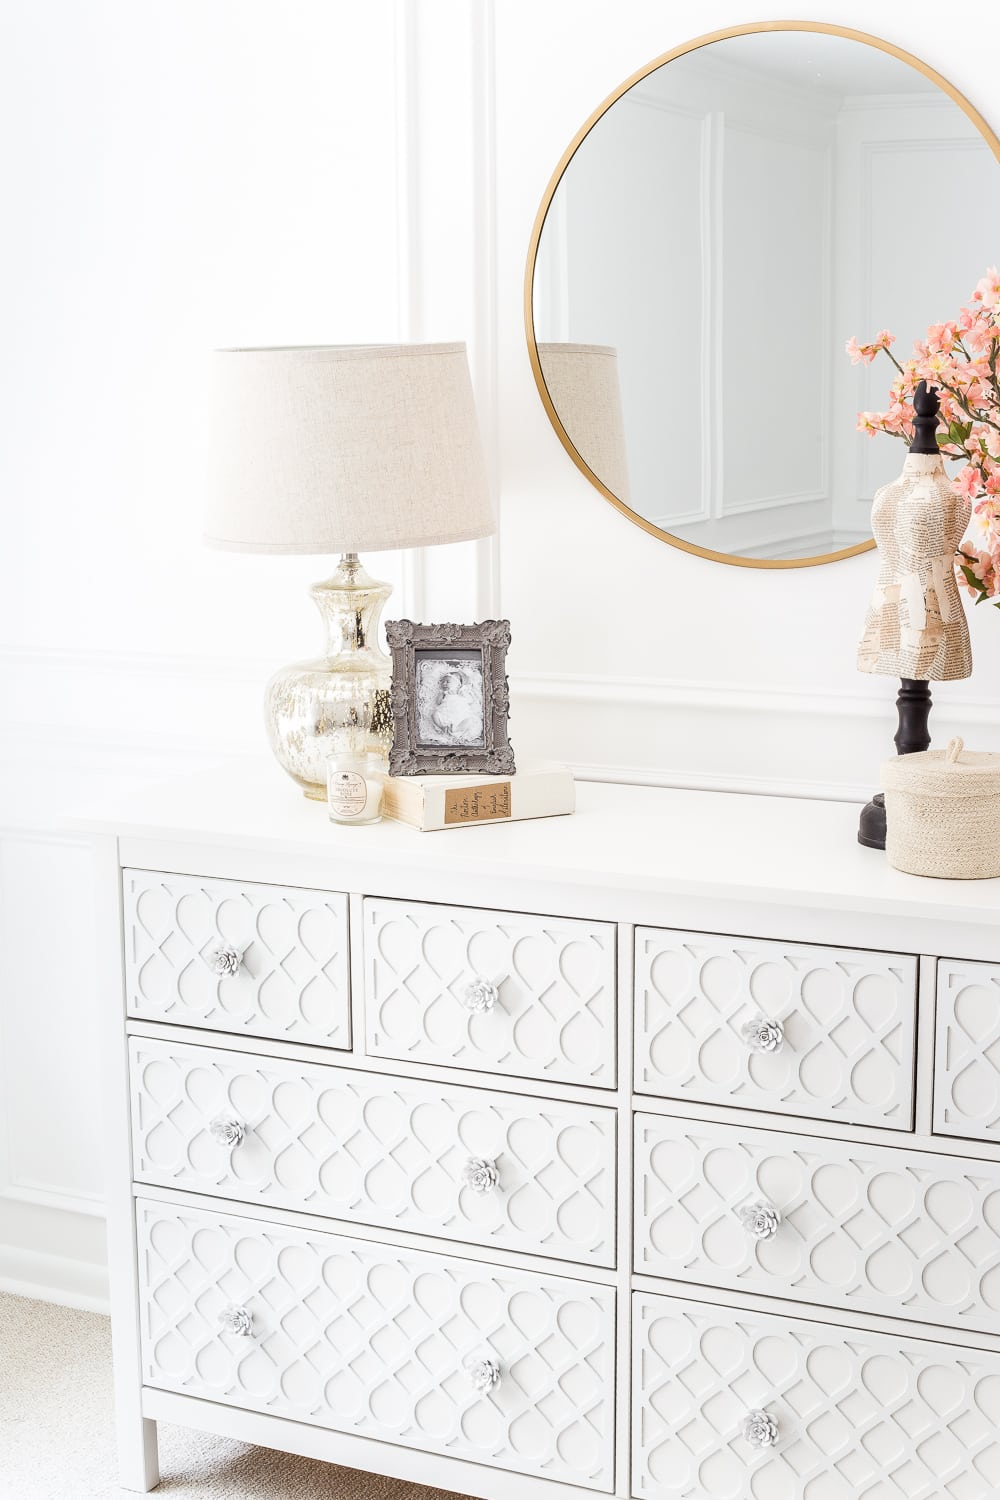 High-end designer knock-off dresser using a plain IKEA dresser and Hobby Lobby knobs with O'verlays appliques